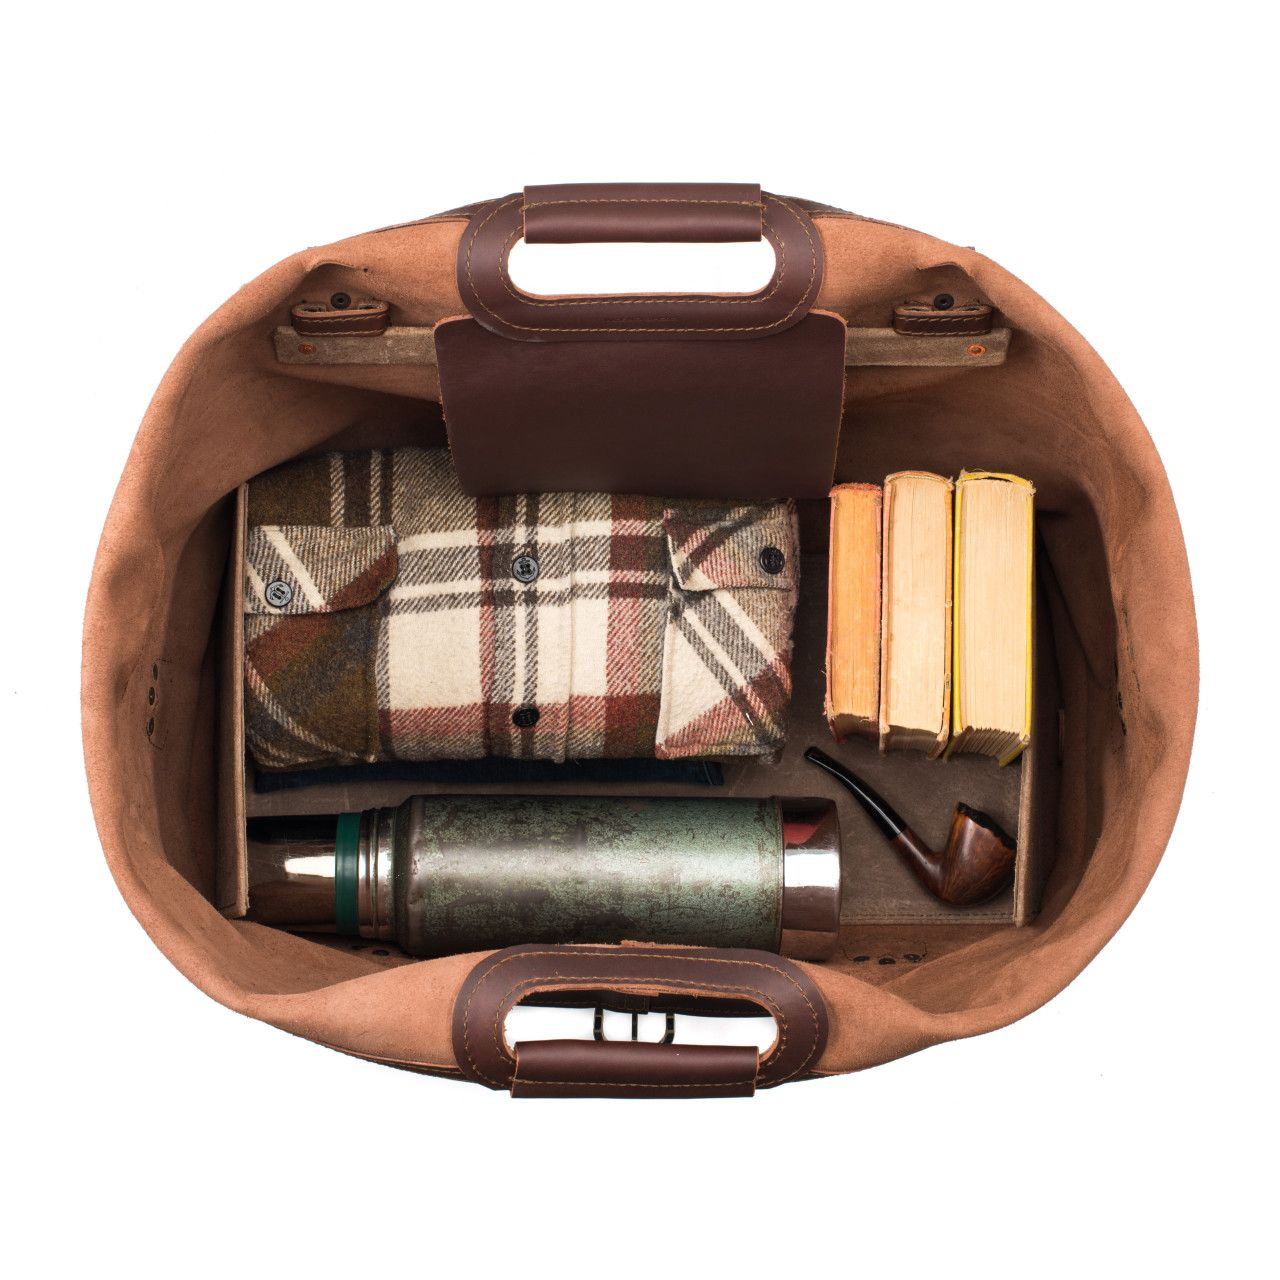 inside the waterbag premium leather duffel bag medium in chestnut leather are shirts, shoes, books, thermo and pipe